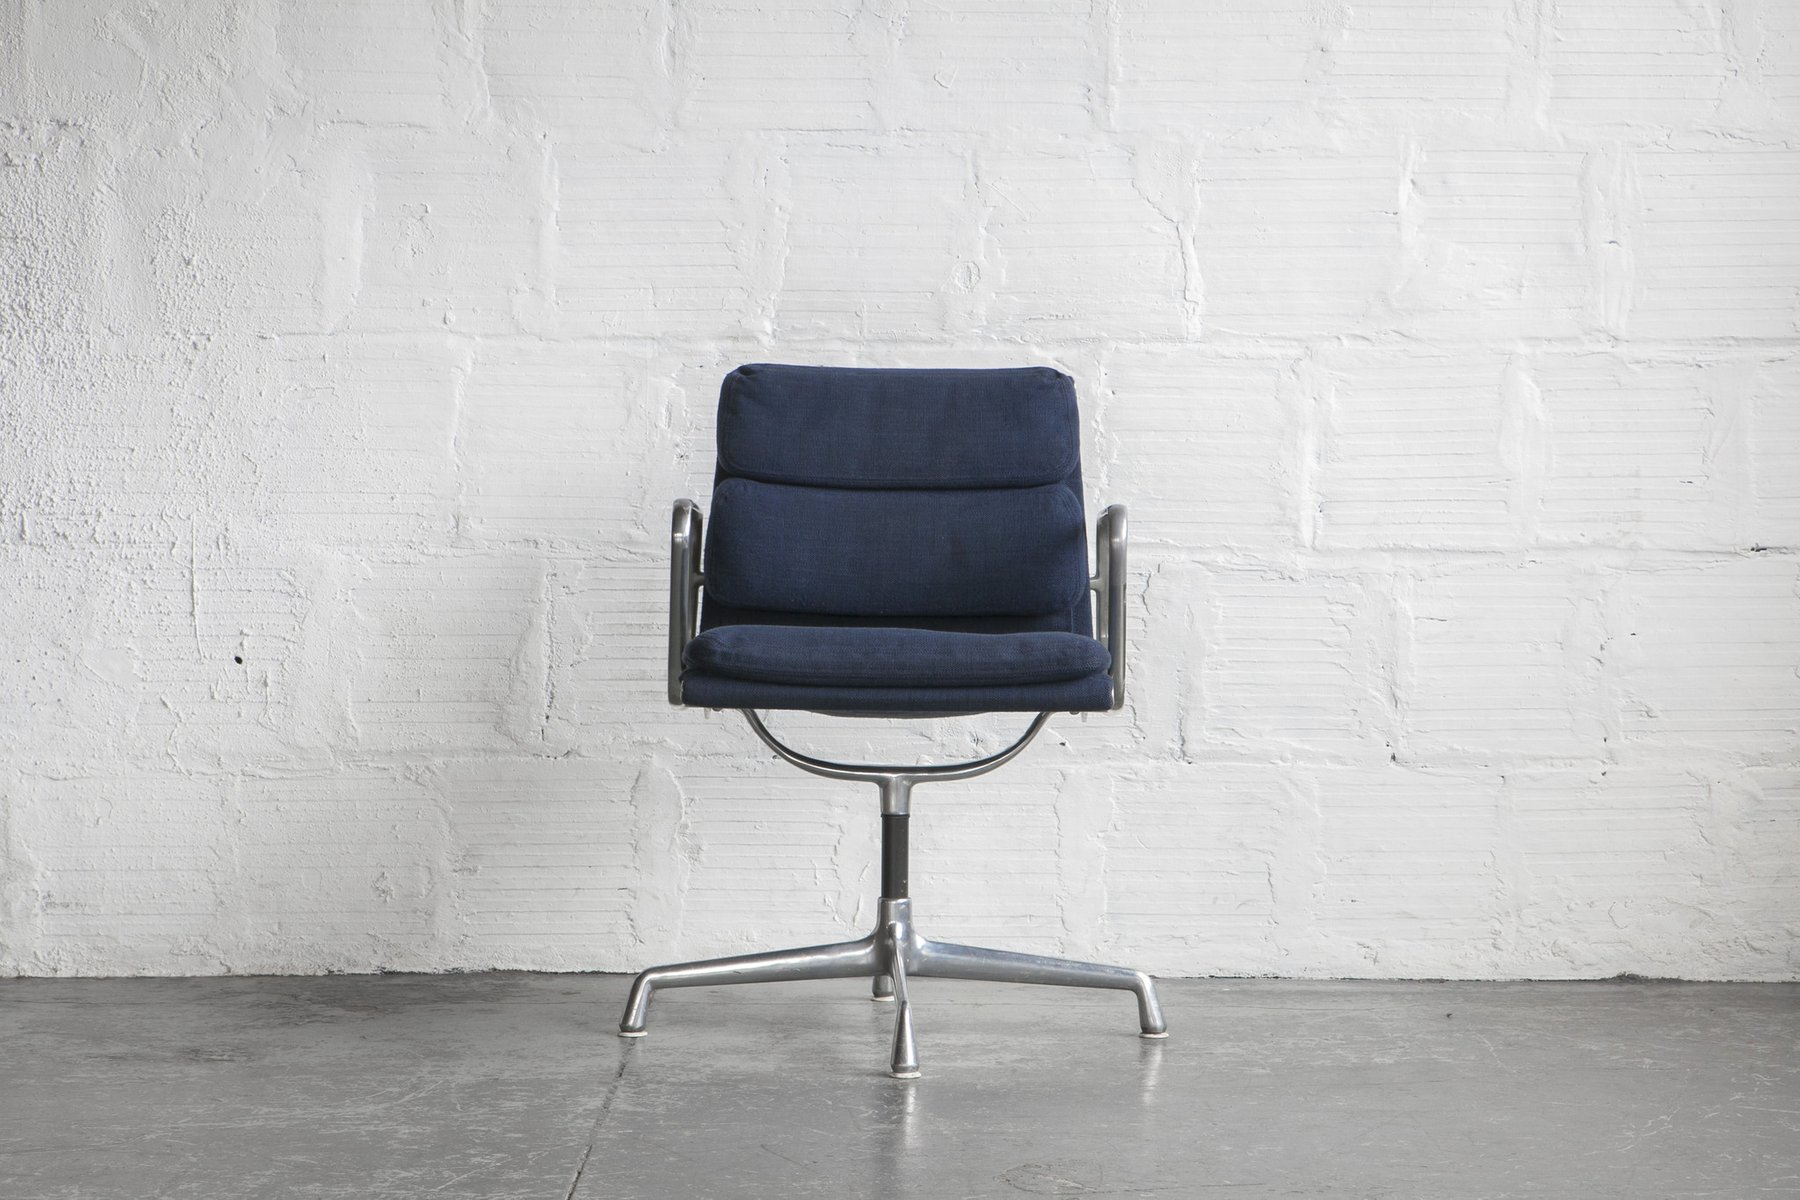 Eames Soft Pad Management Chair Soft Pad Management Chair By Charles And Ray Eames For Vitra